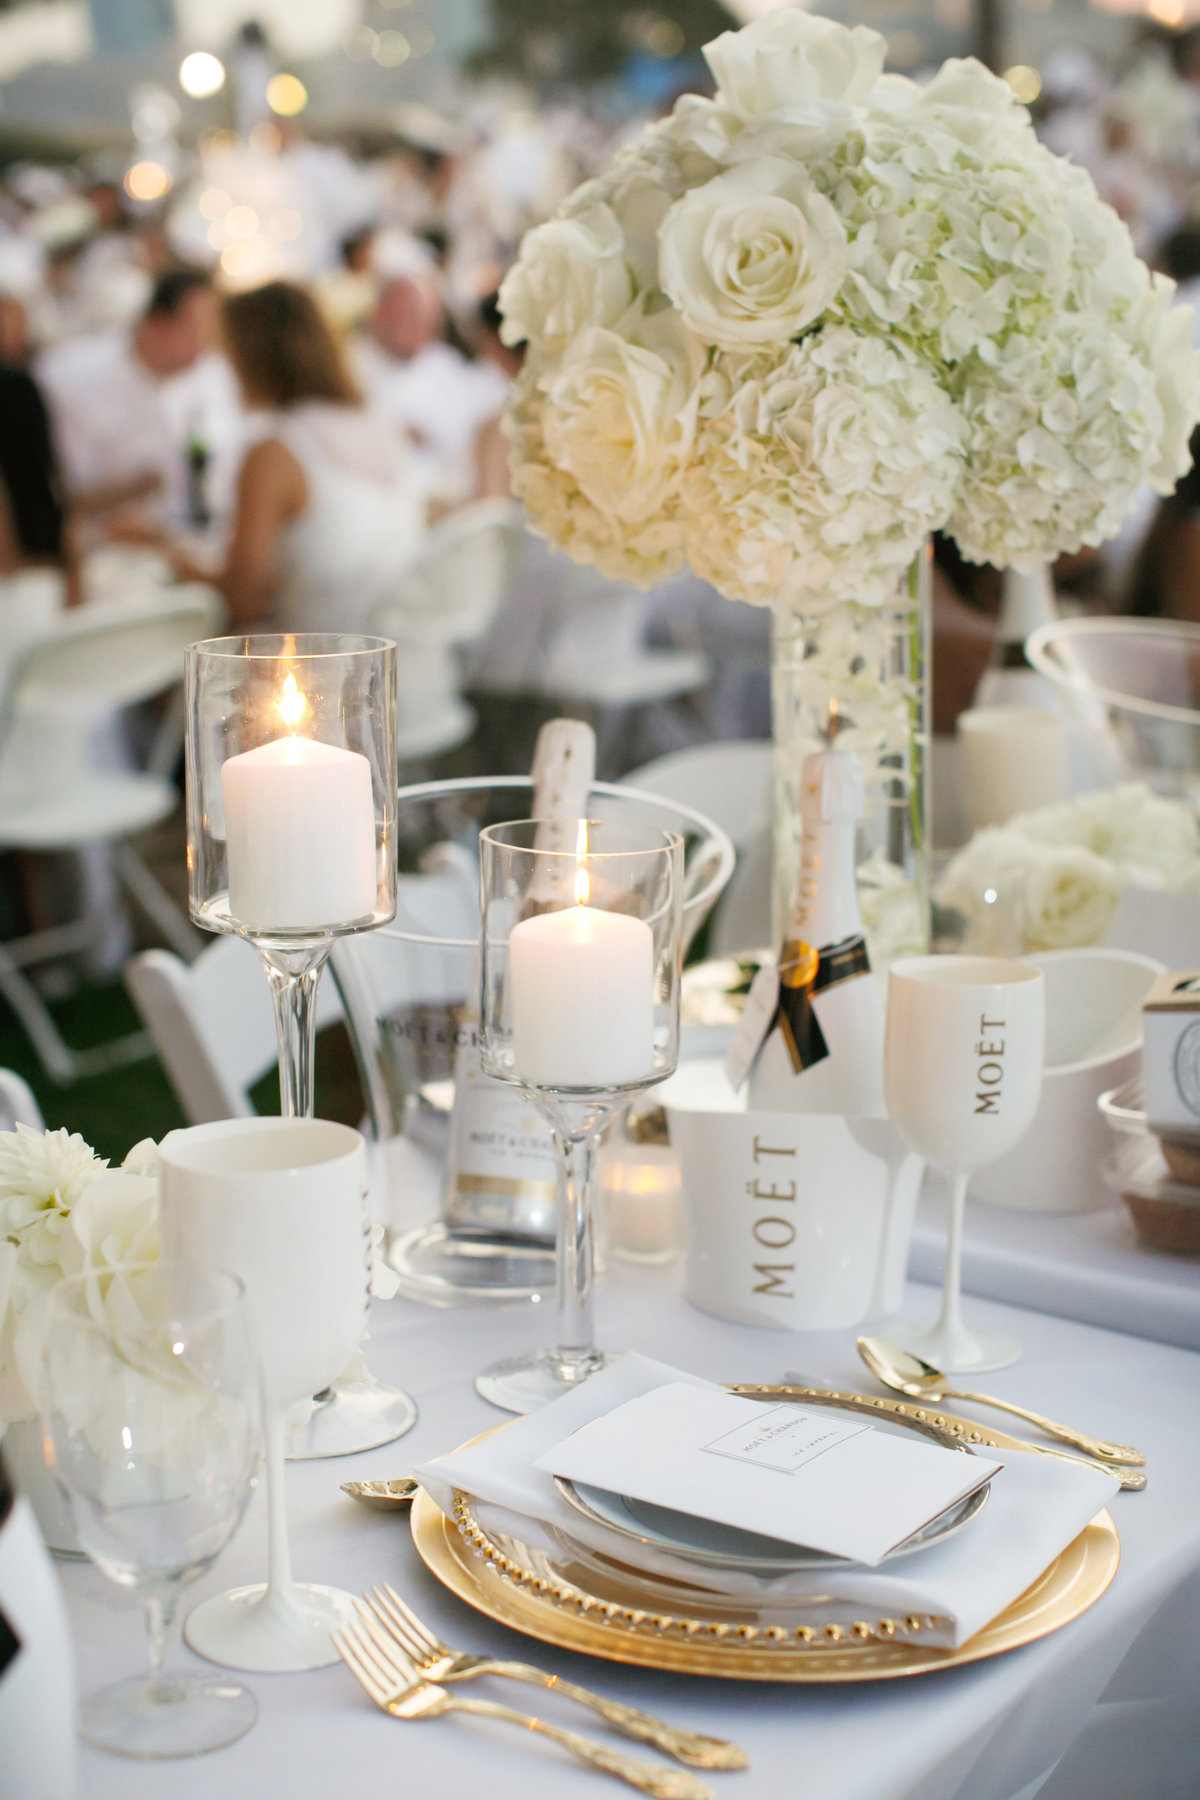 Le Diner En Blanc New York City